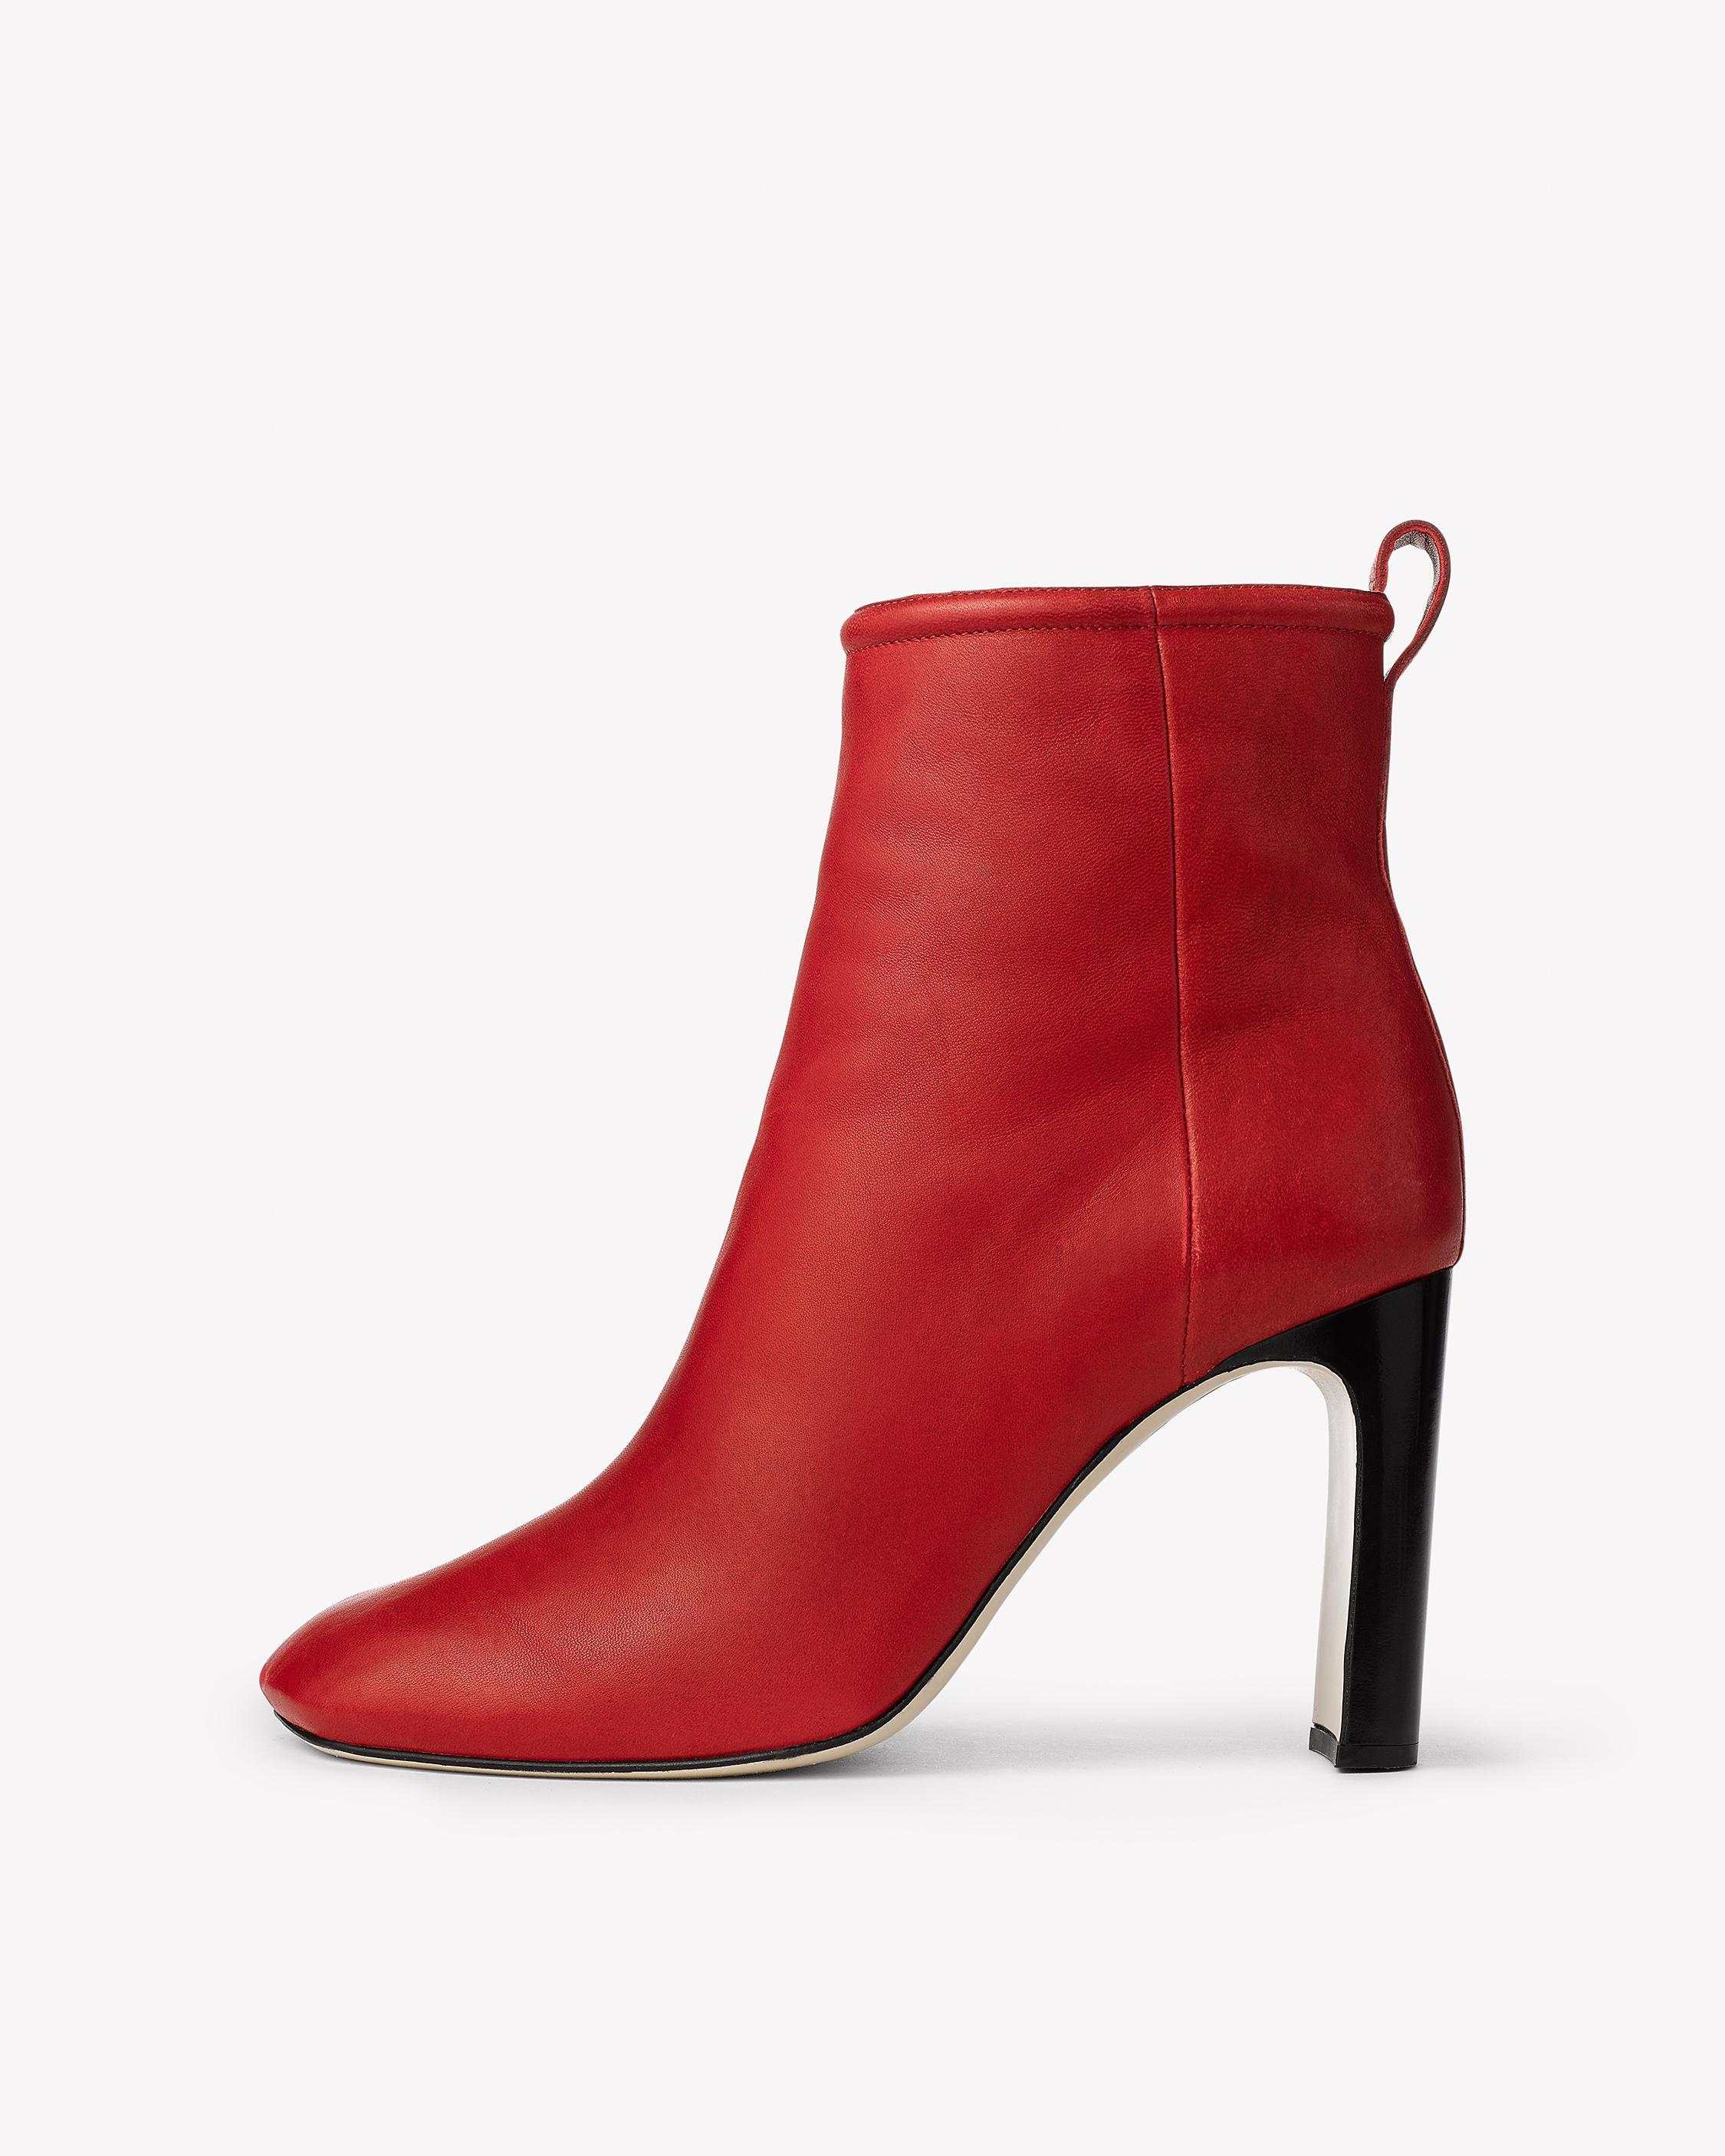 Rag & Bone. Women's Red Ellis Leather Ankle Boots